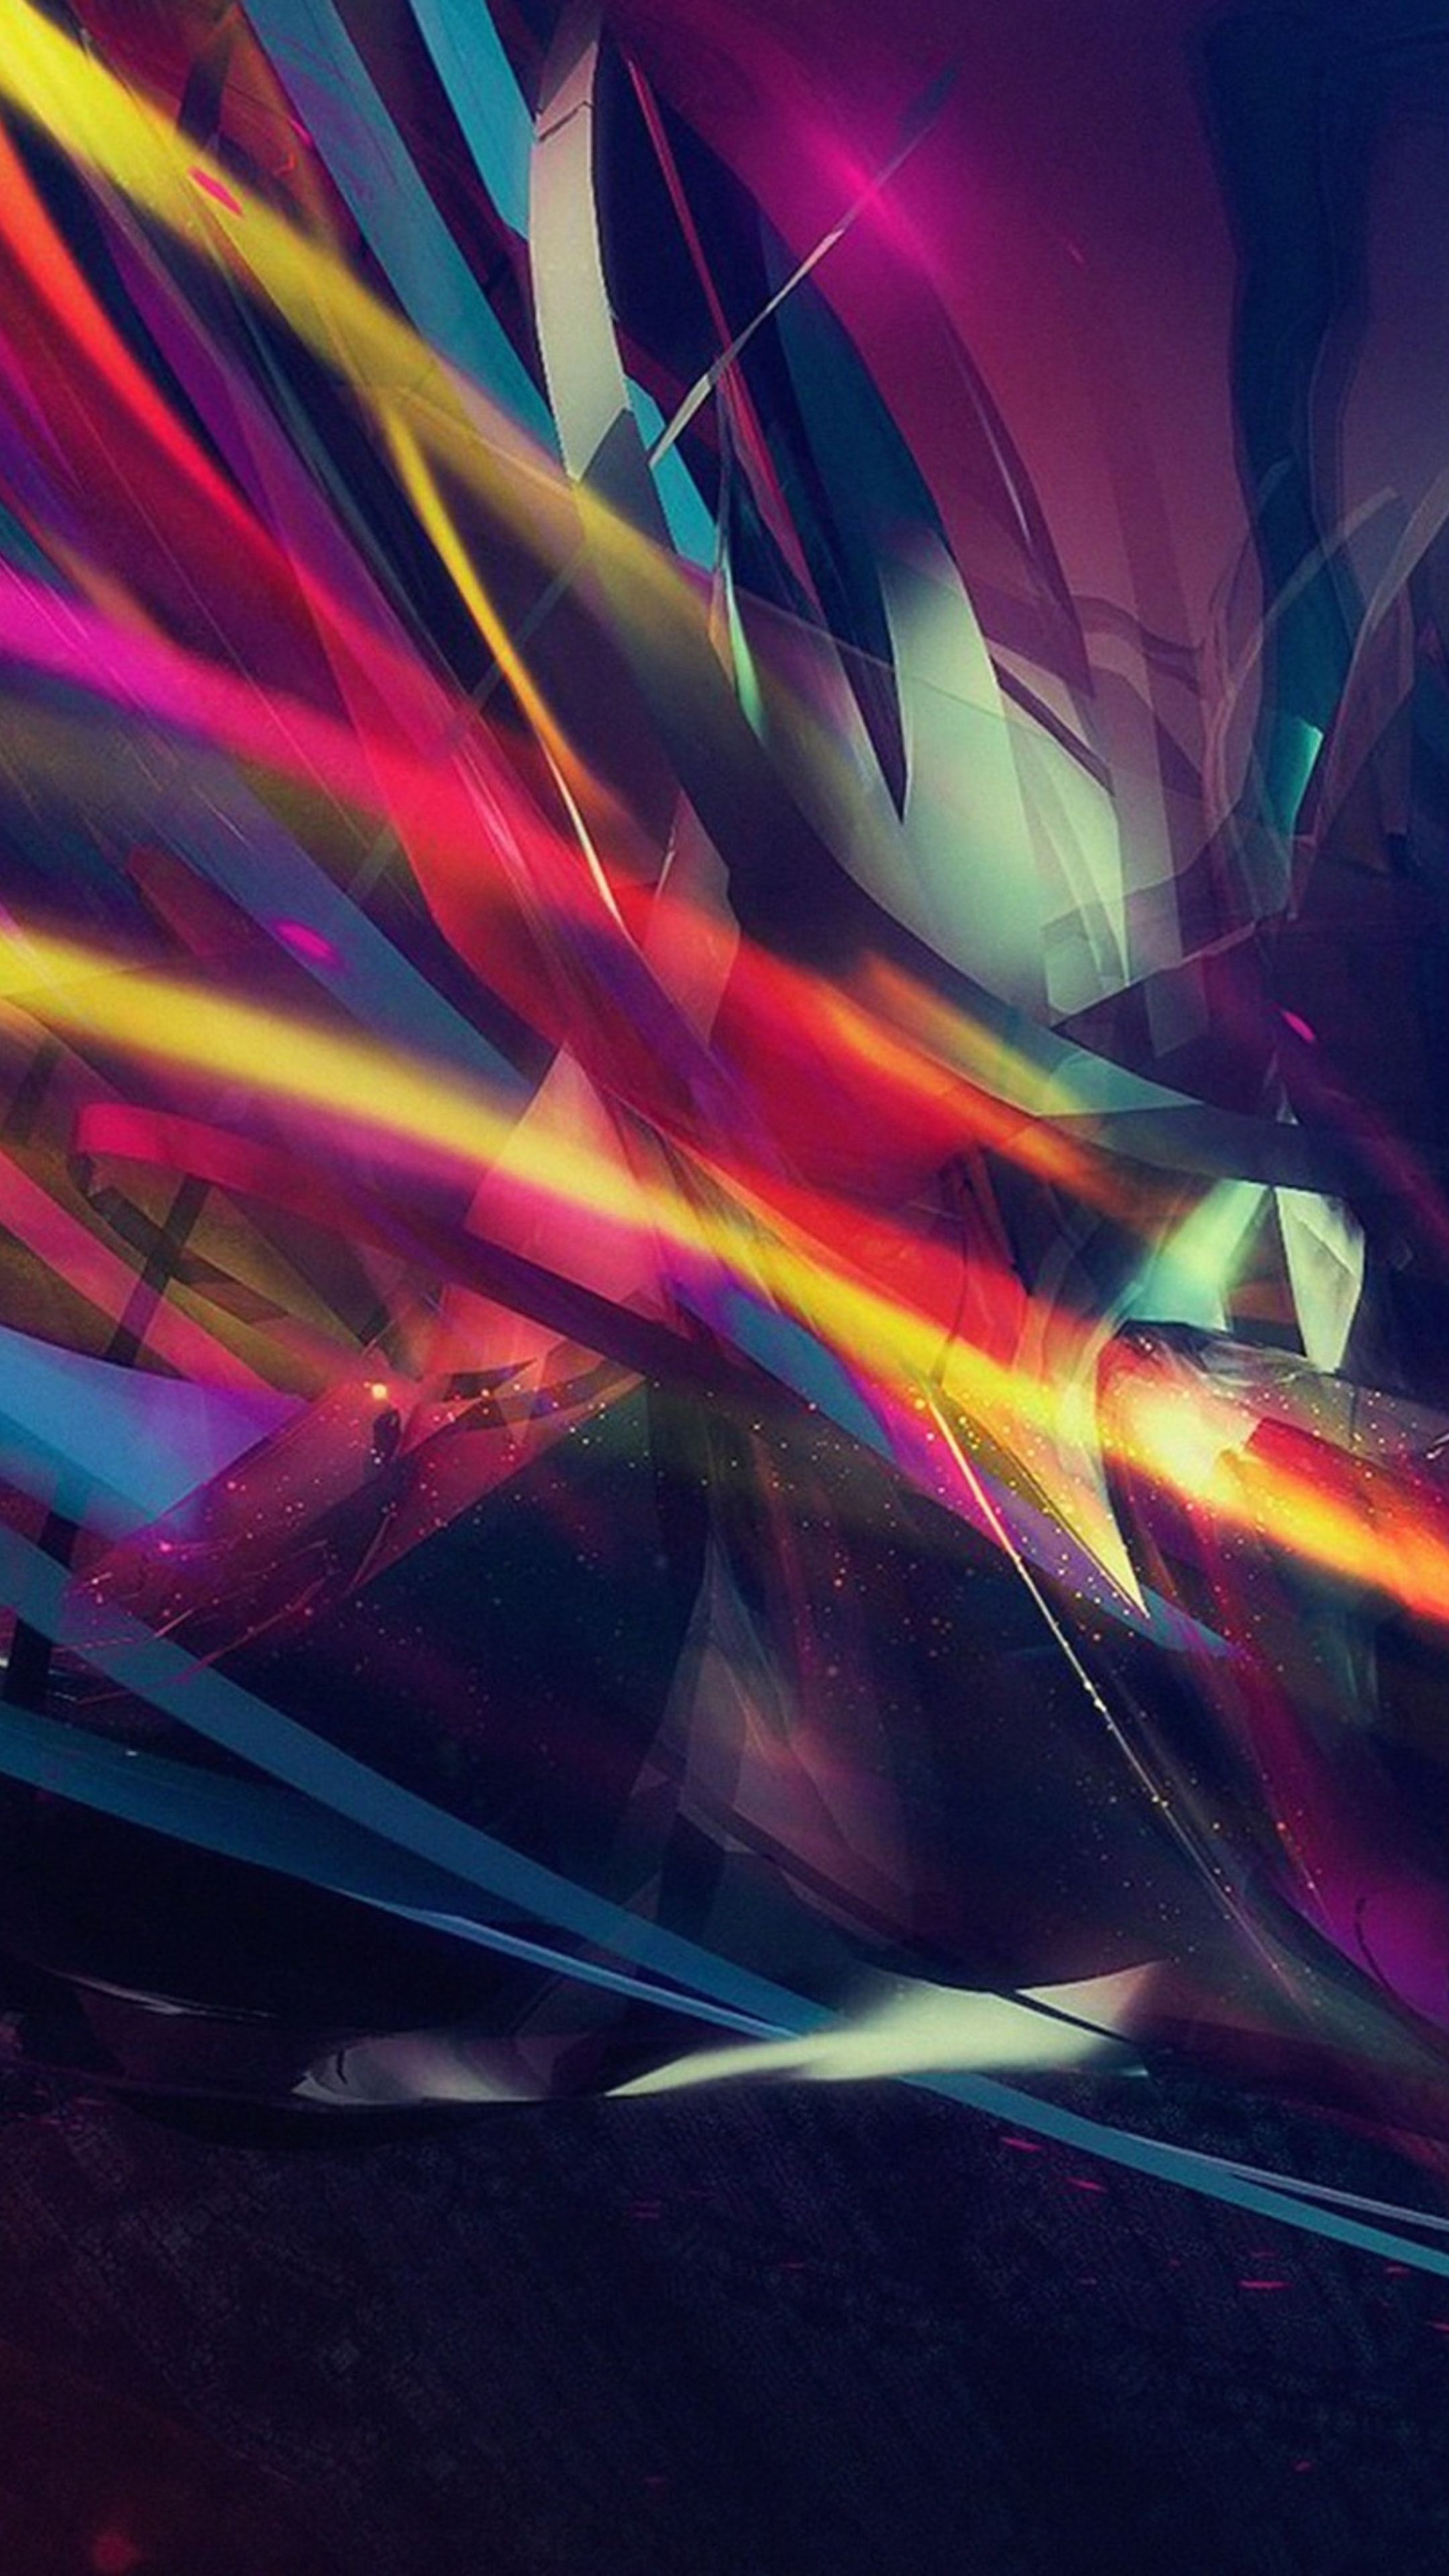 2160x3840 abstract colorful background hd sony xperia x xz - Art wallpaper 2160x3840 ...